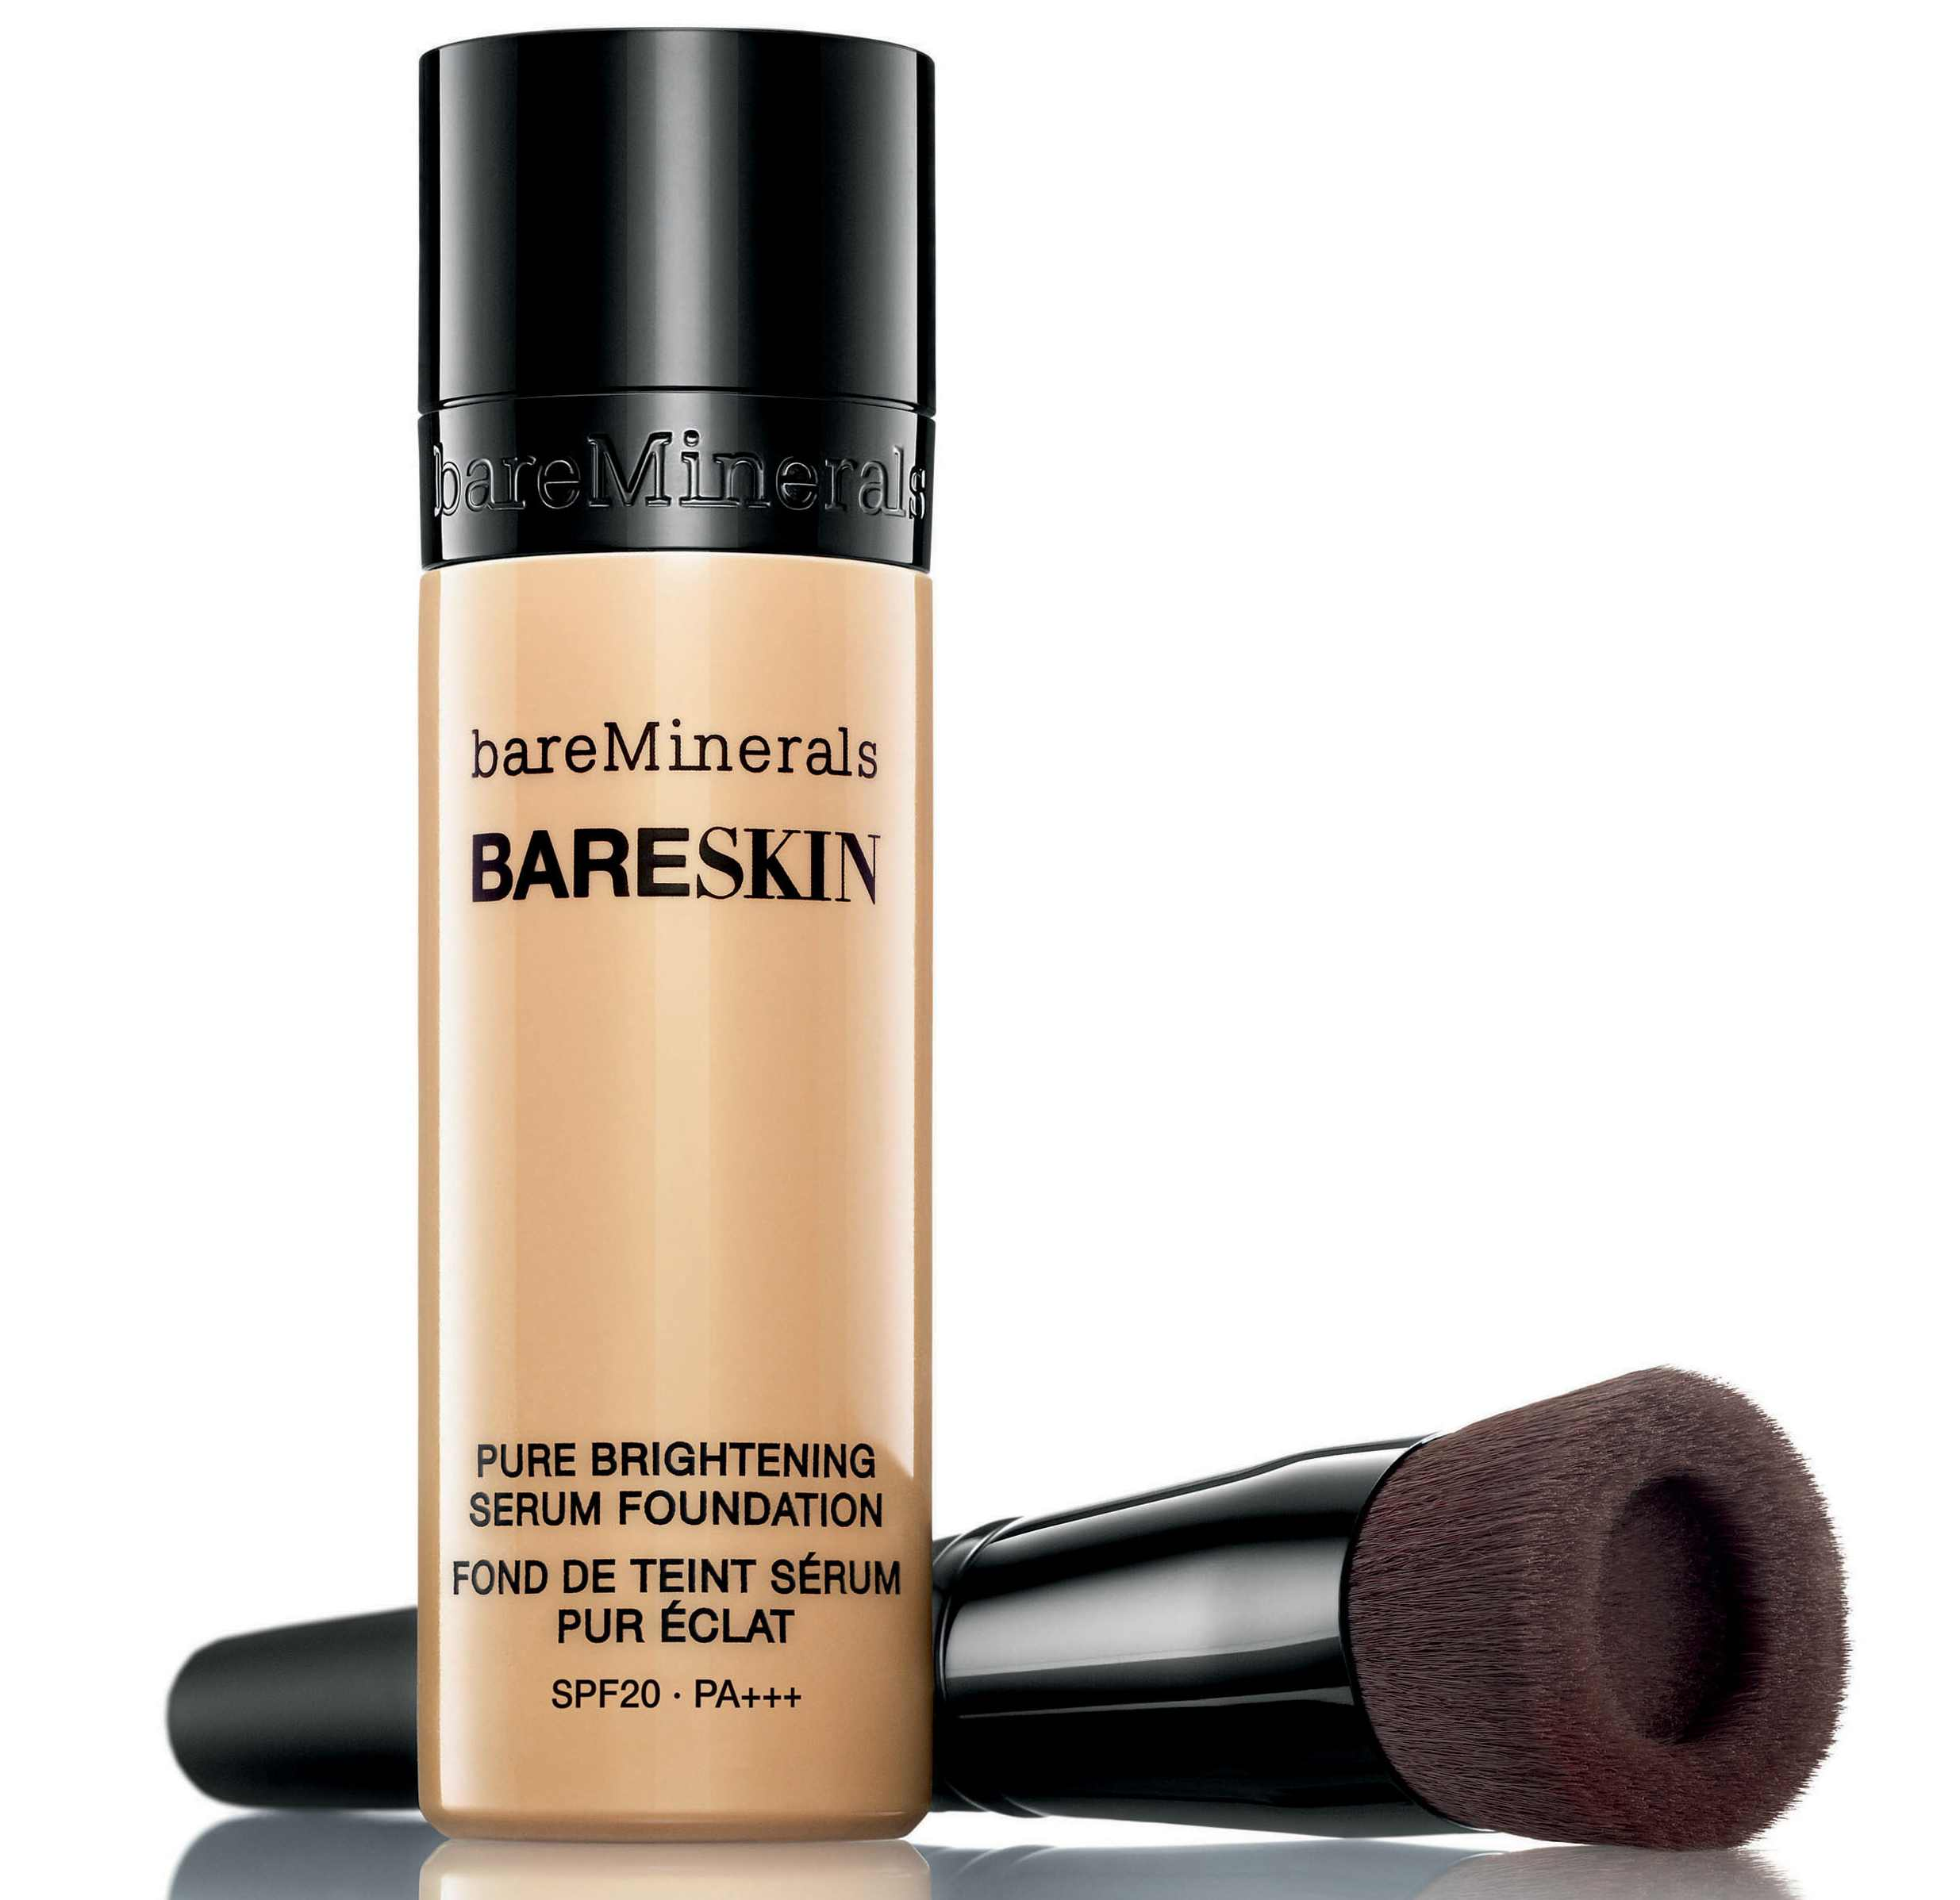 Bareminerals Bareskin Brightening Serum Foundation (BareMinerals/PA)